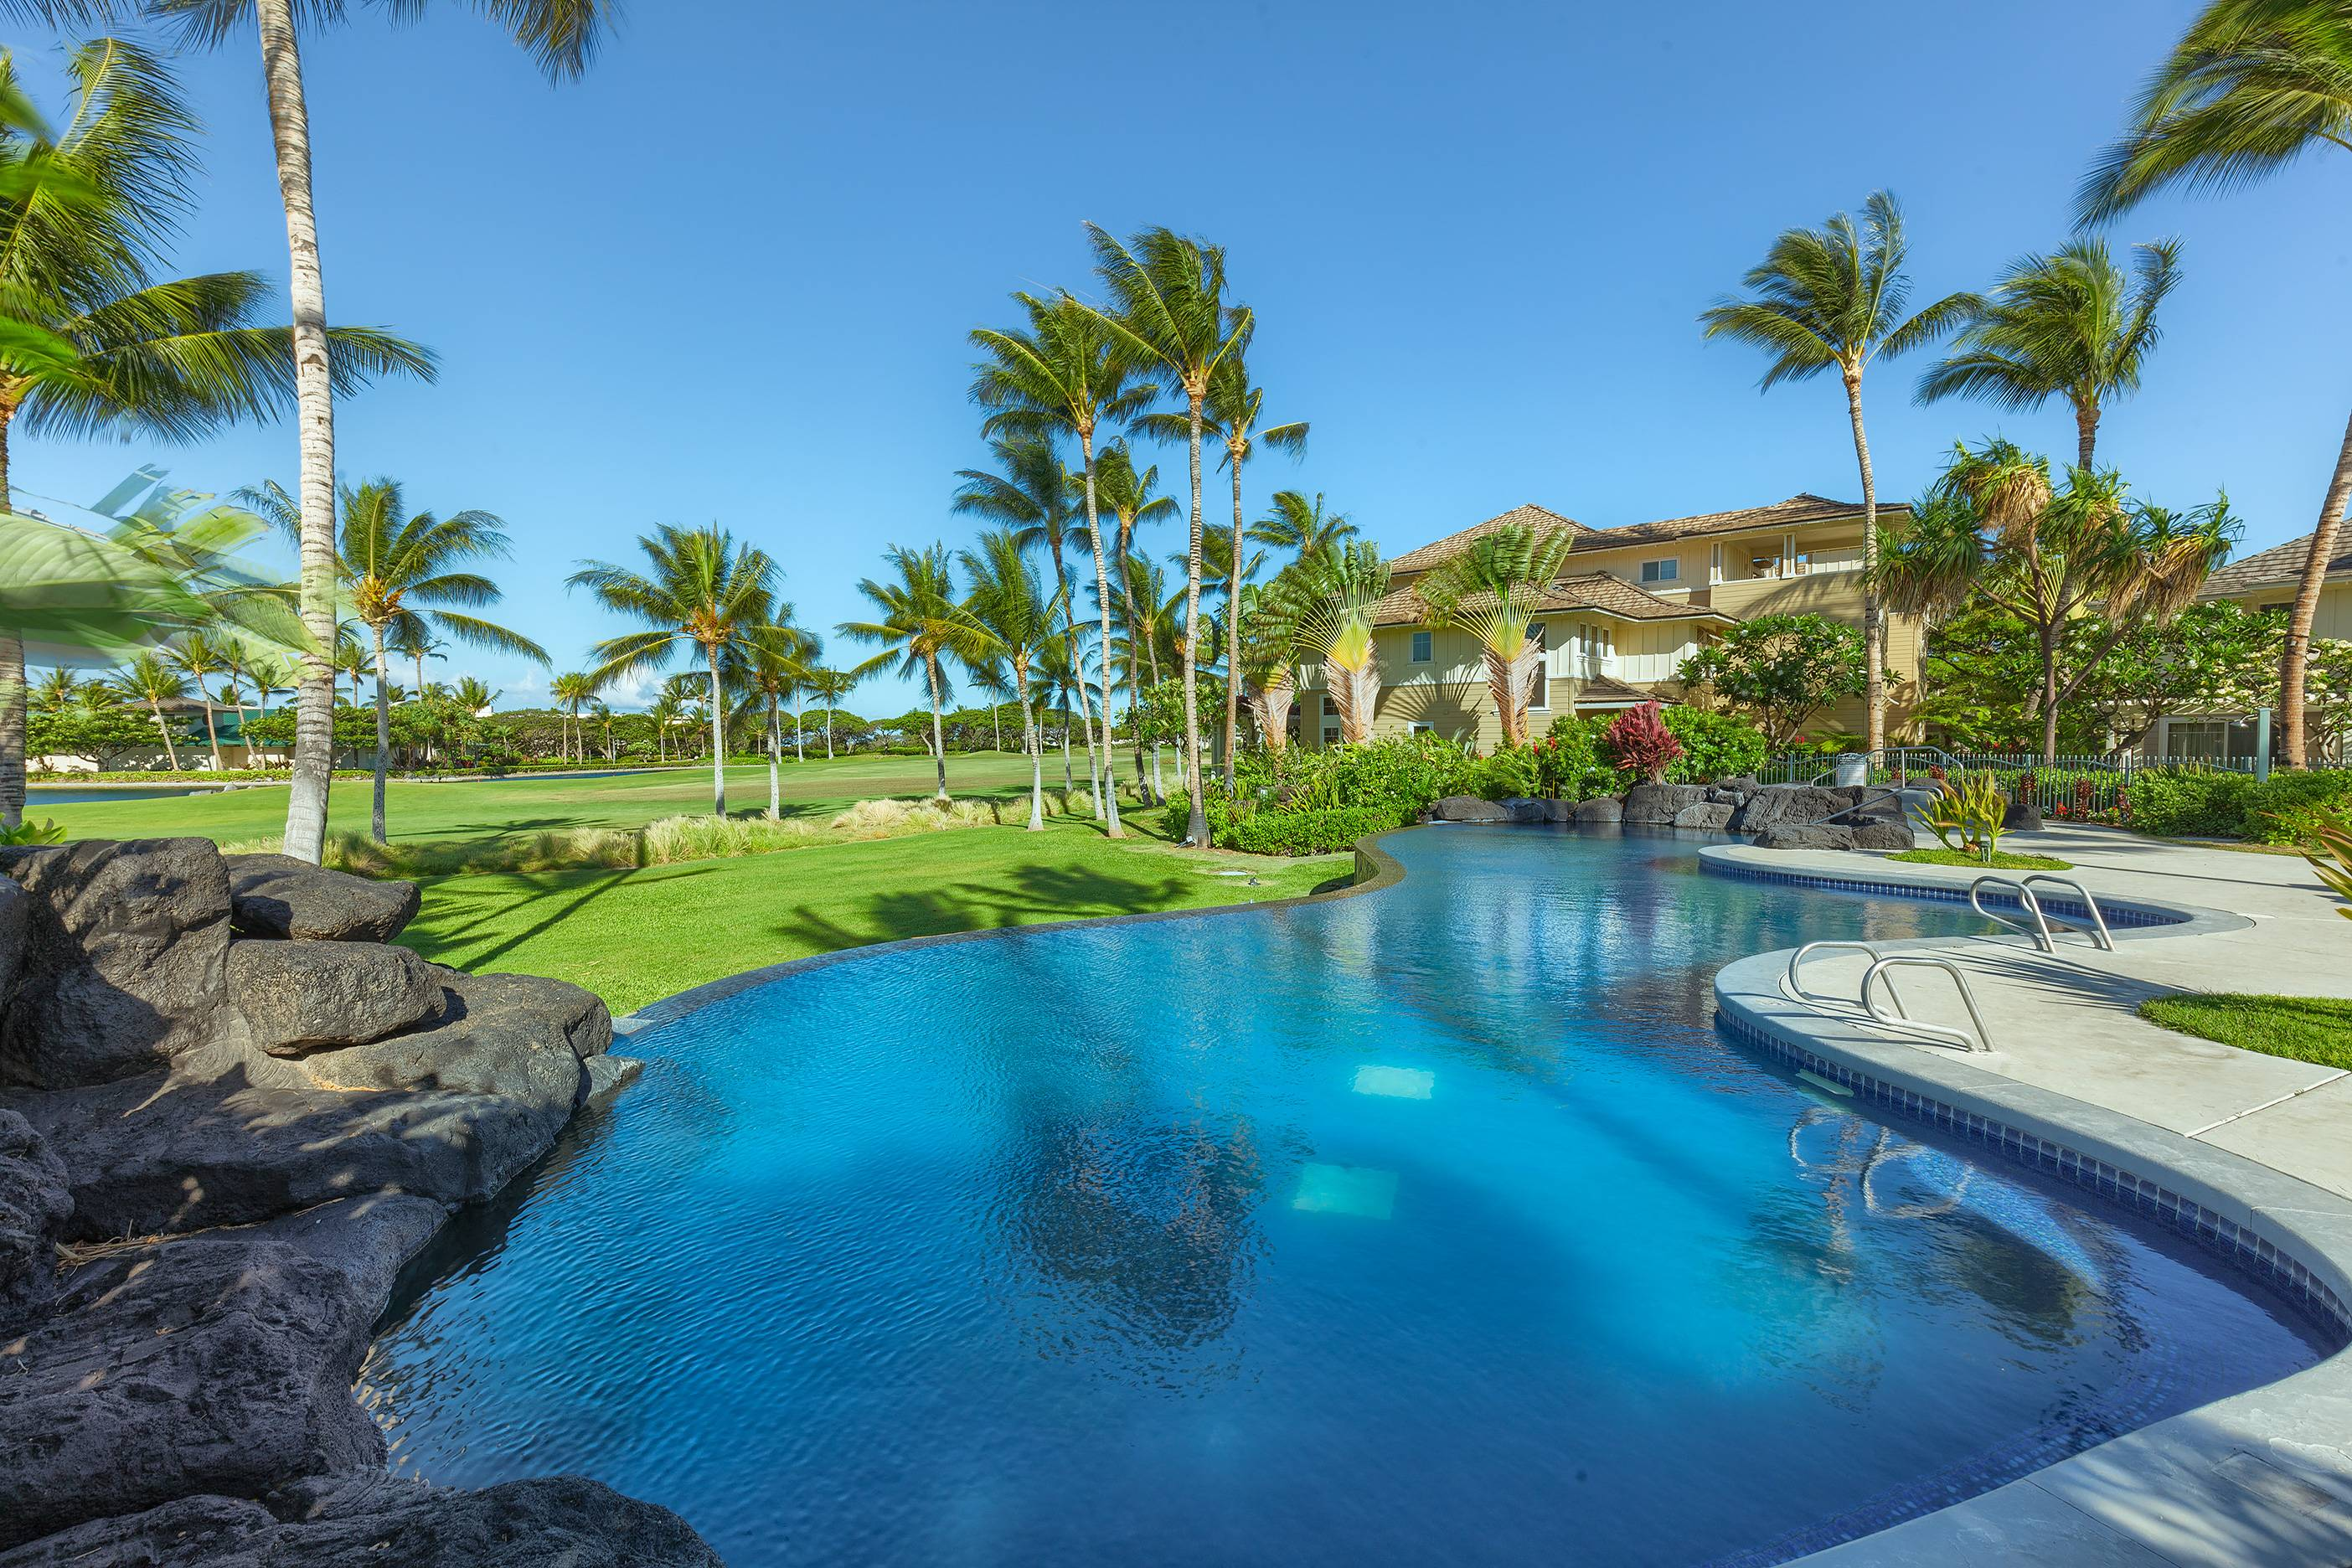 Fairway Villas pool at Waikoloa Resort